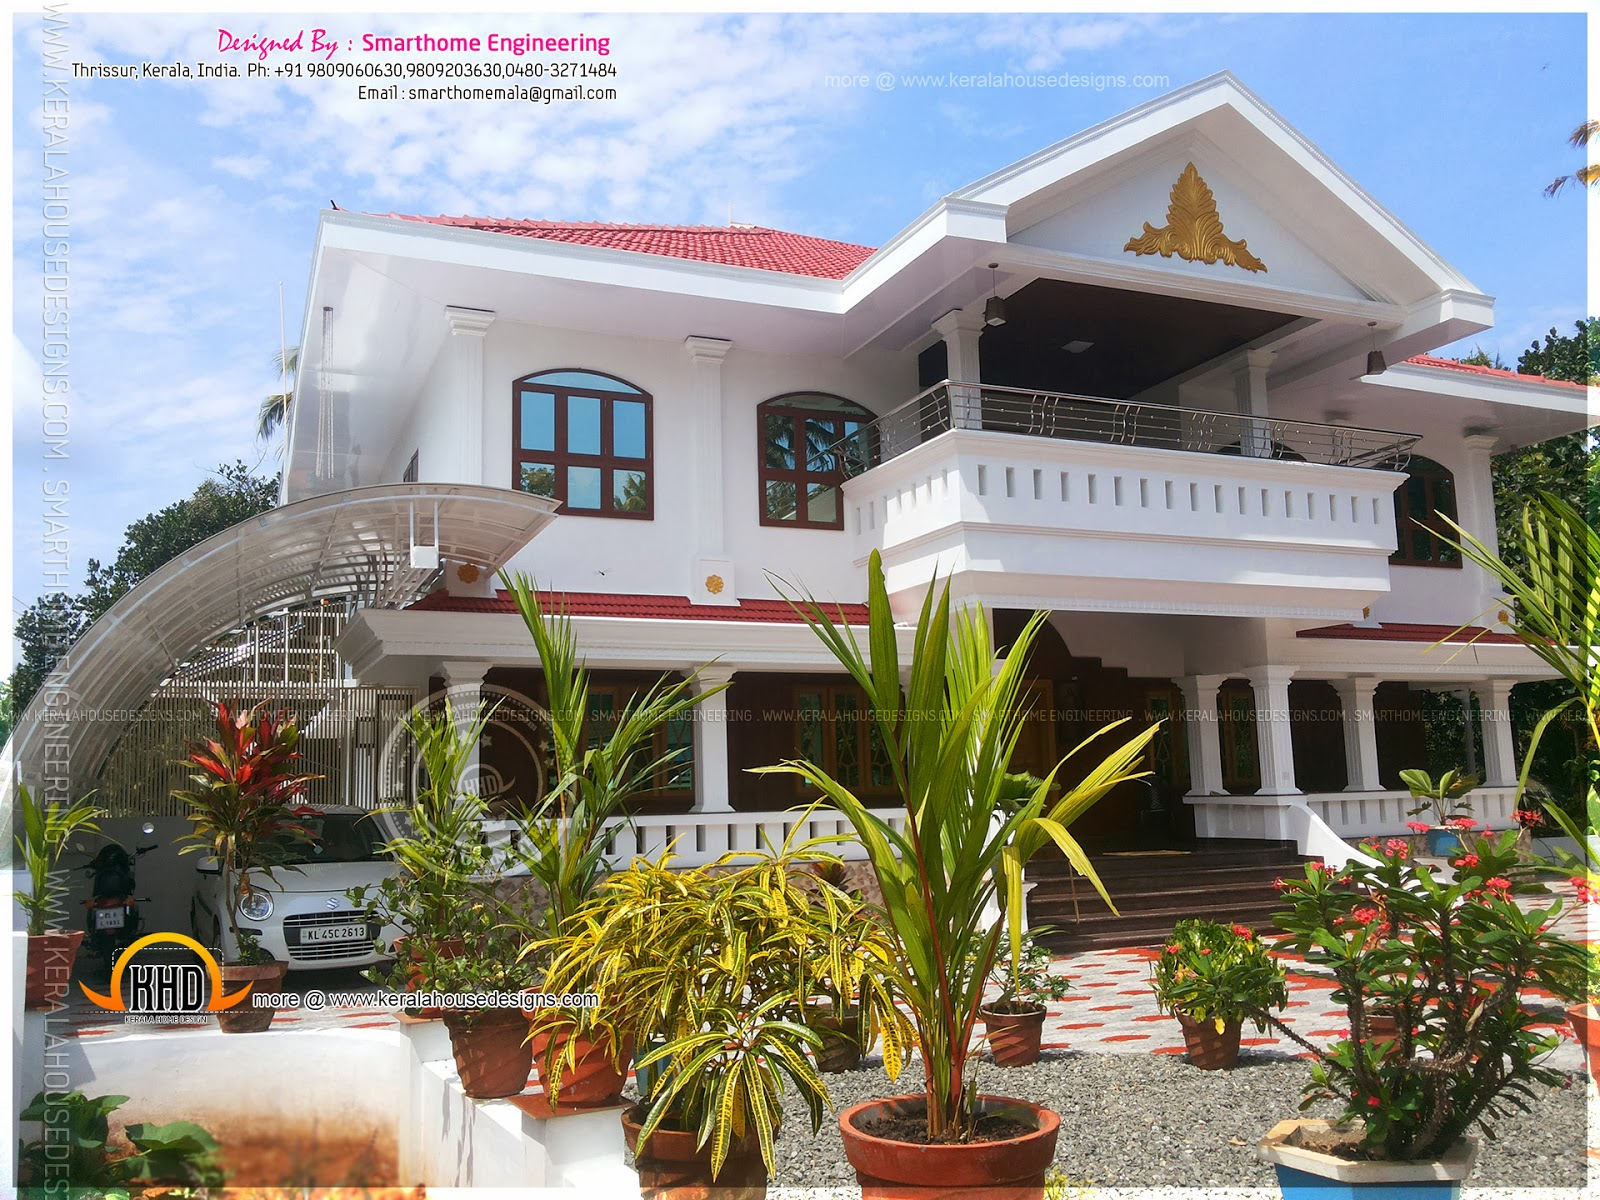 Home Designer Collection october 2013 - kerala home design and floor plans